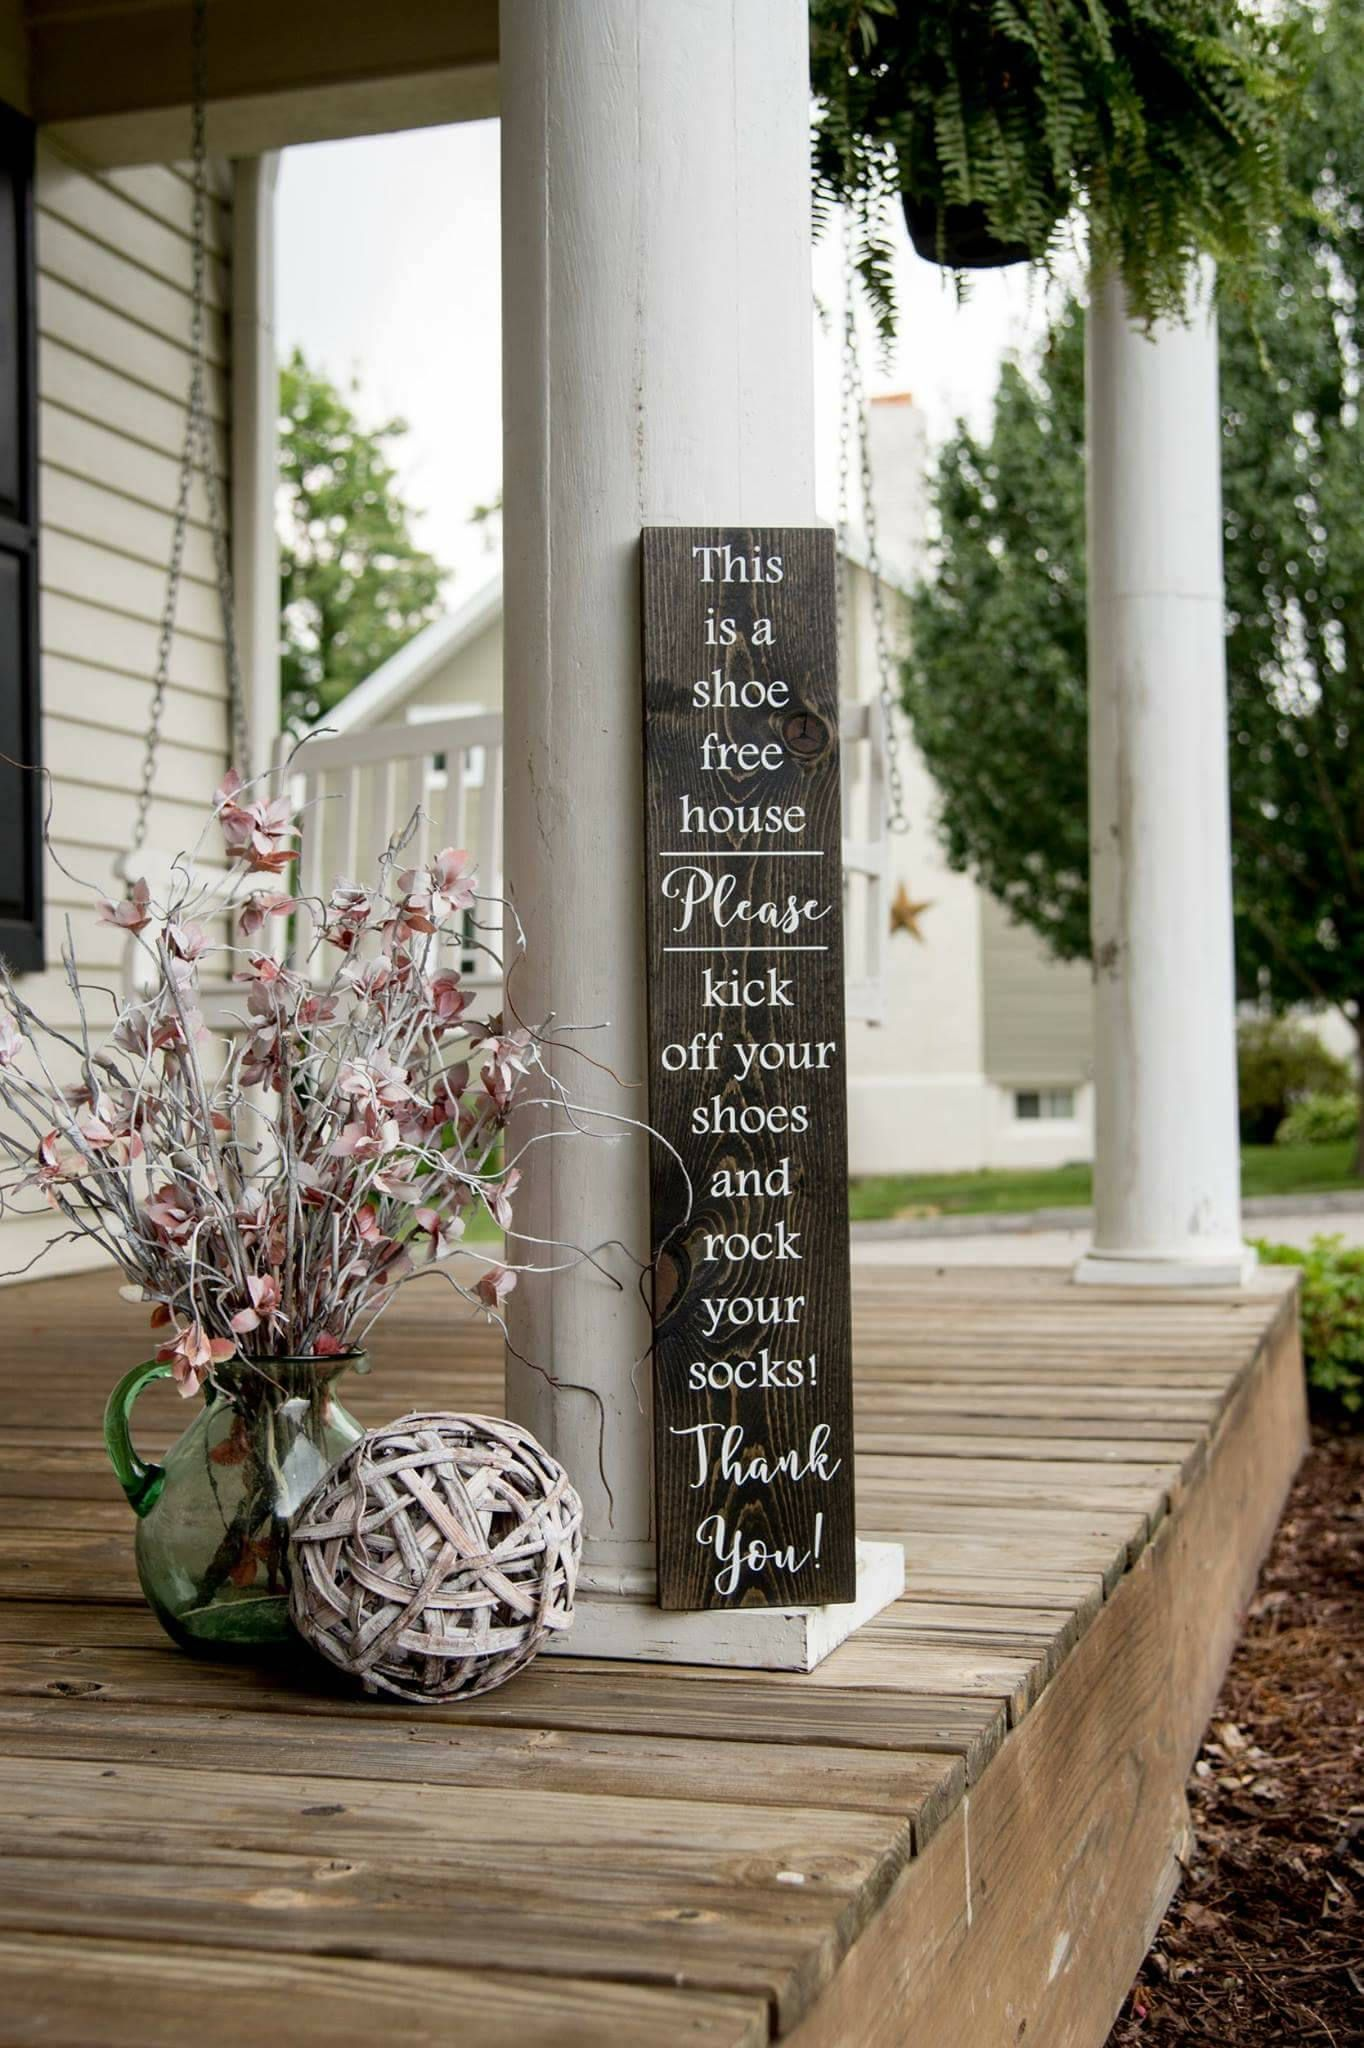 Porch signs welcome my porch barn wood quot what happens on the porch - Front Porches Rock Your Socks Wood Sign No Shoes Front Door Home Decor Wooden